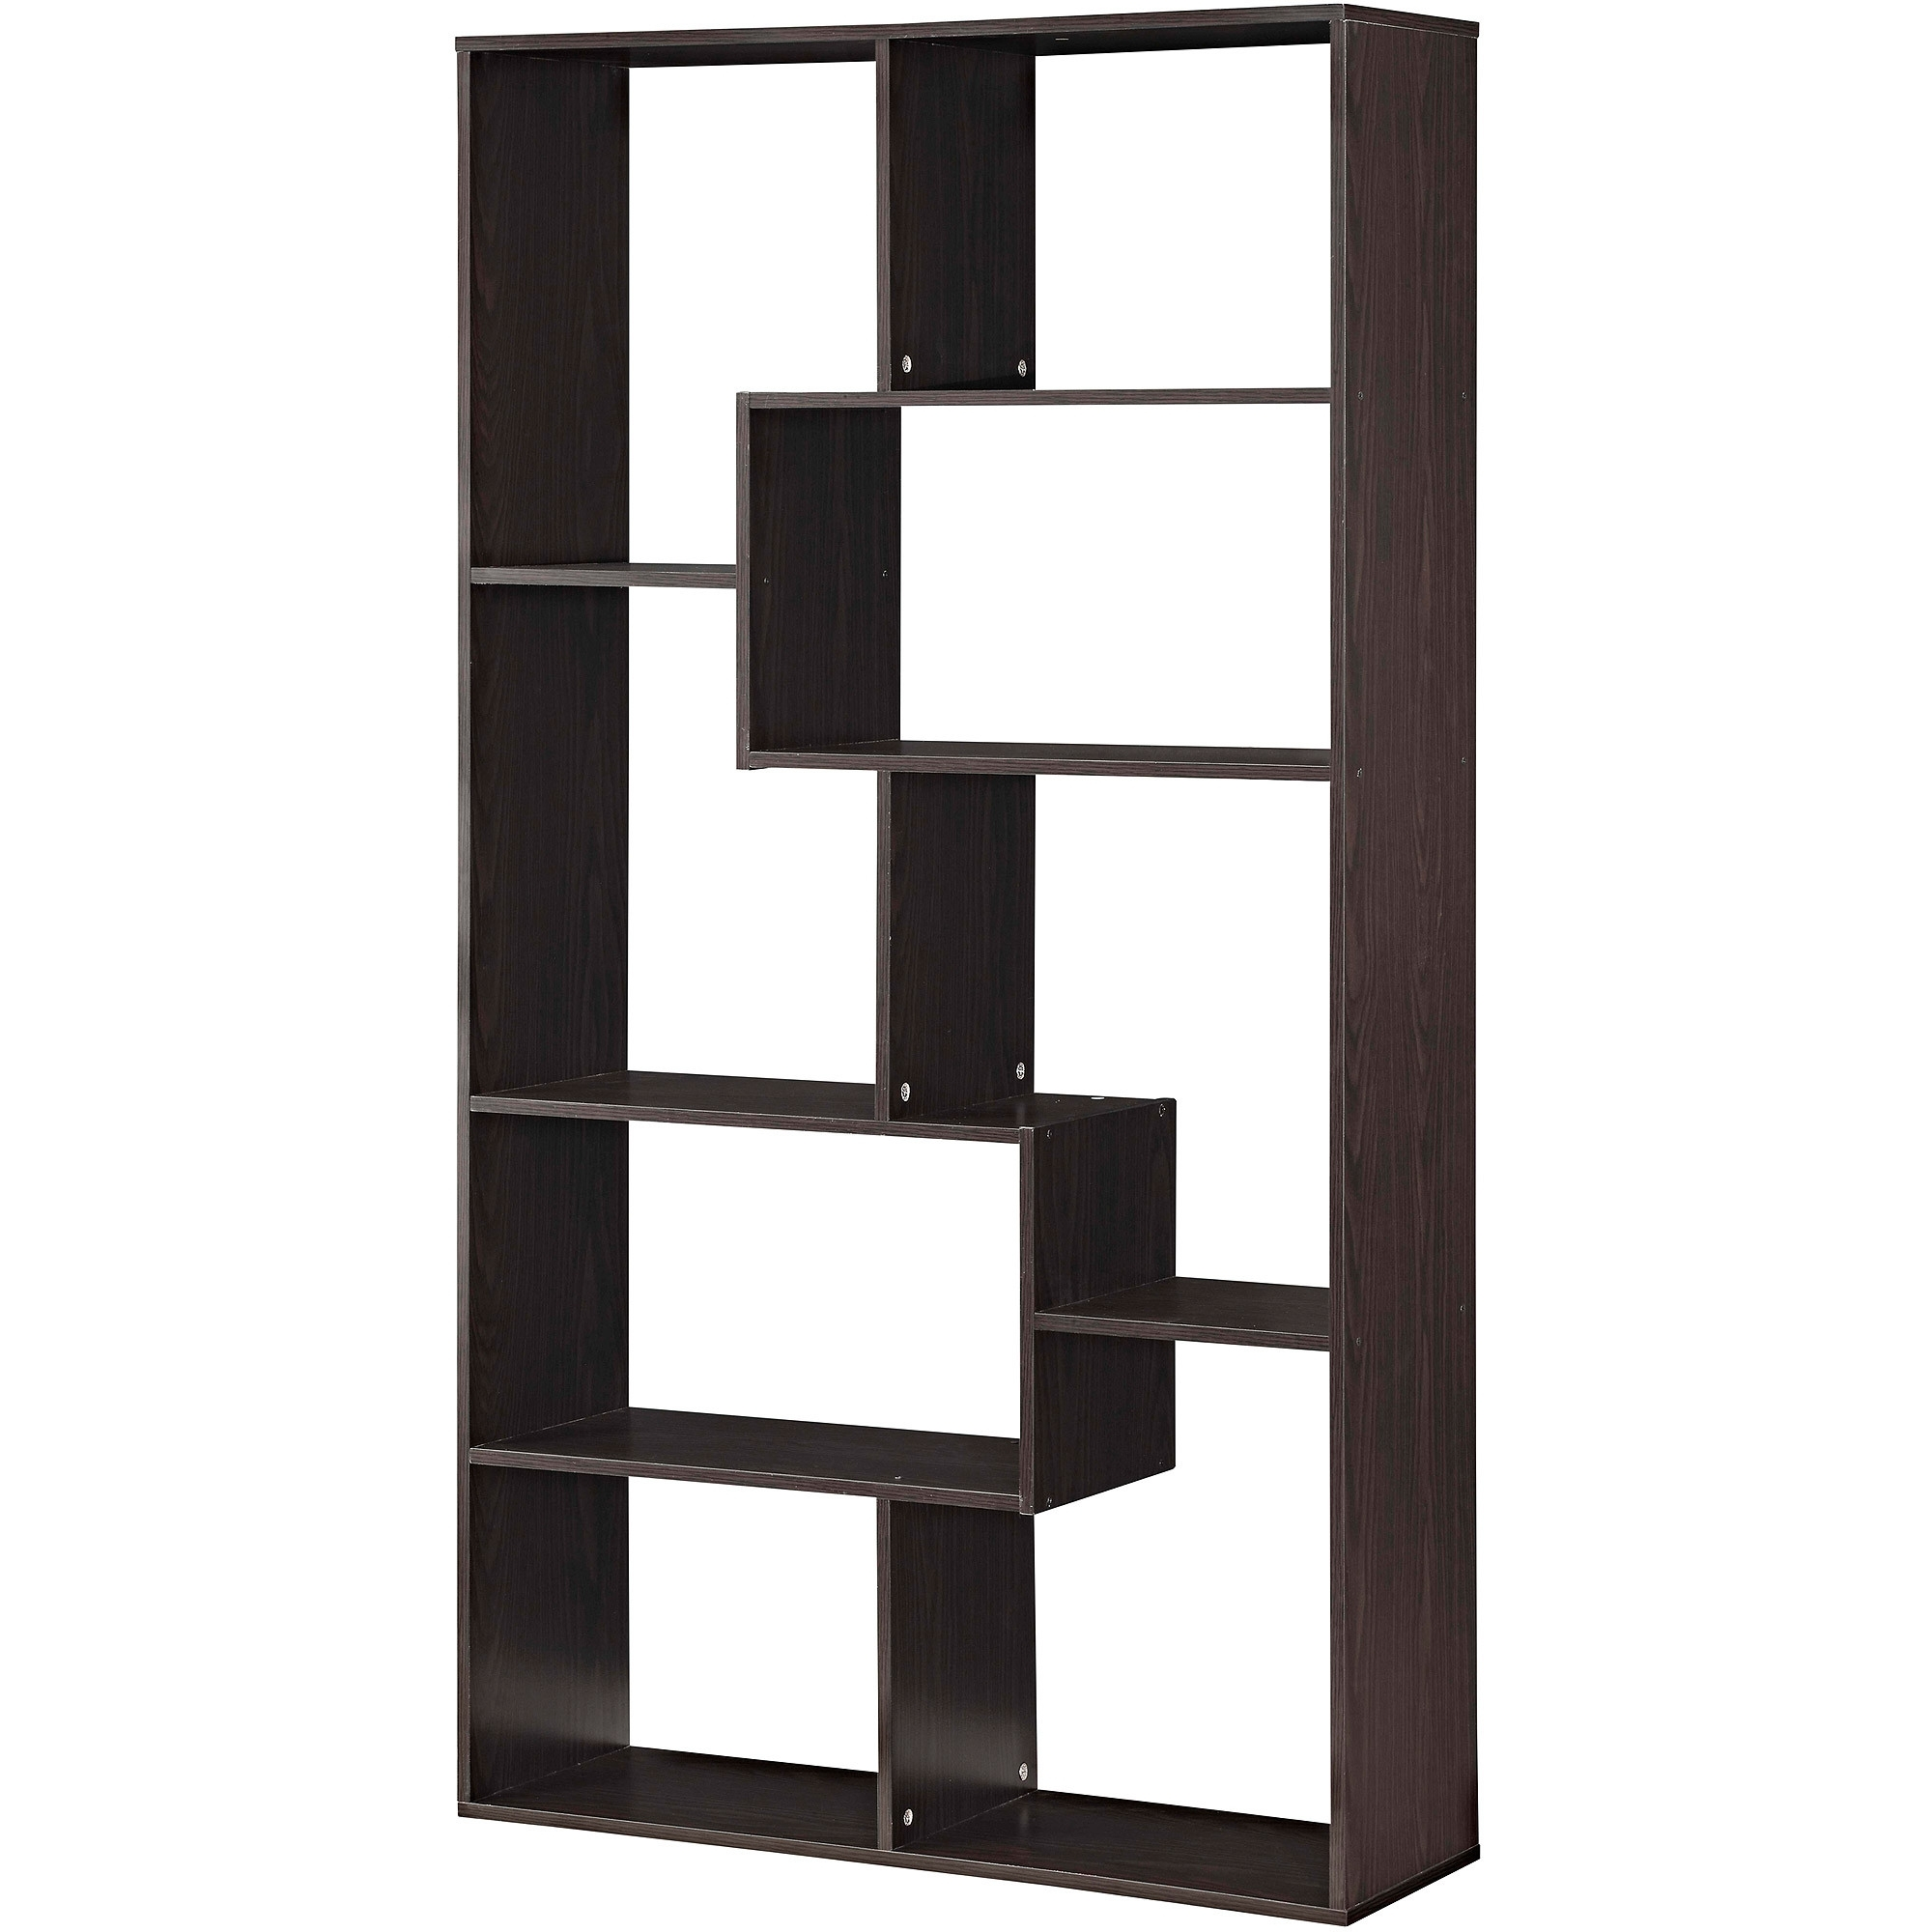 Furniture : Wonderful Bookcases From Walmart Lovely Furniture Nice Intended For Fashionable Black Bookcases Walmart (View 10 of 15)